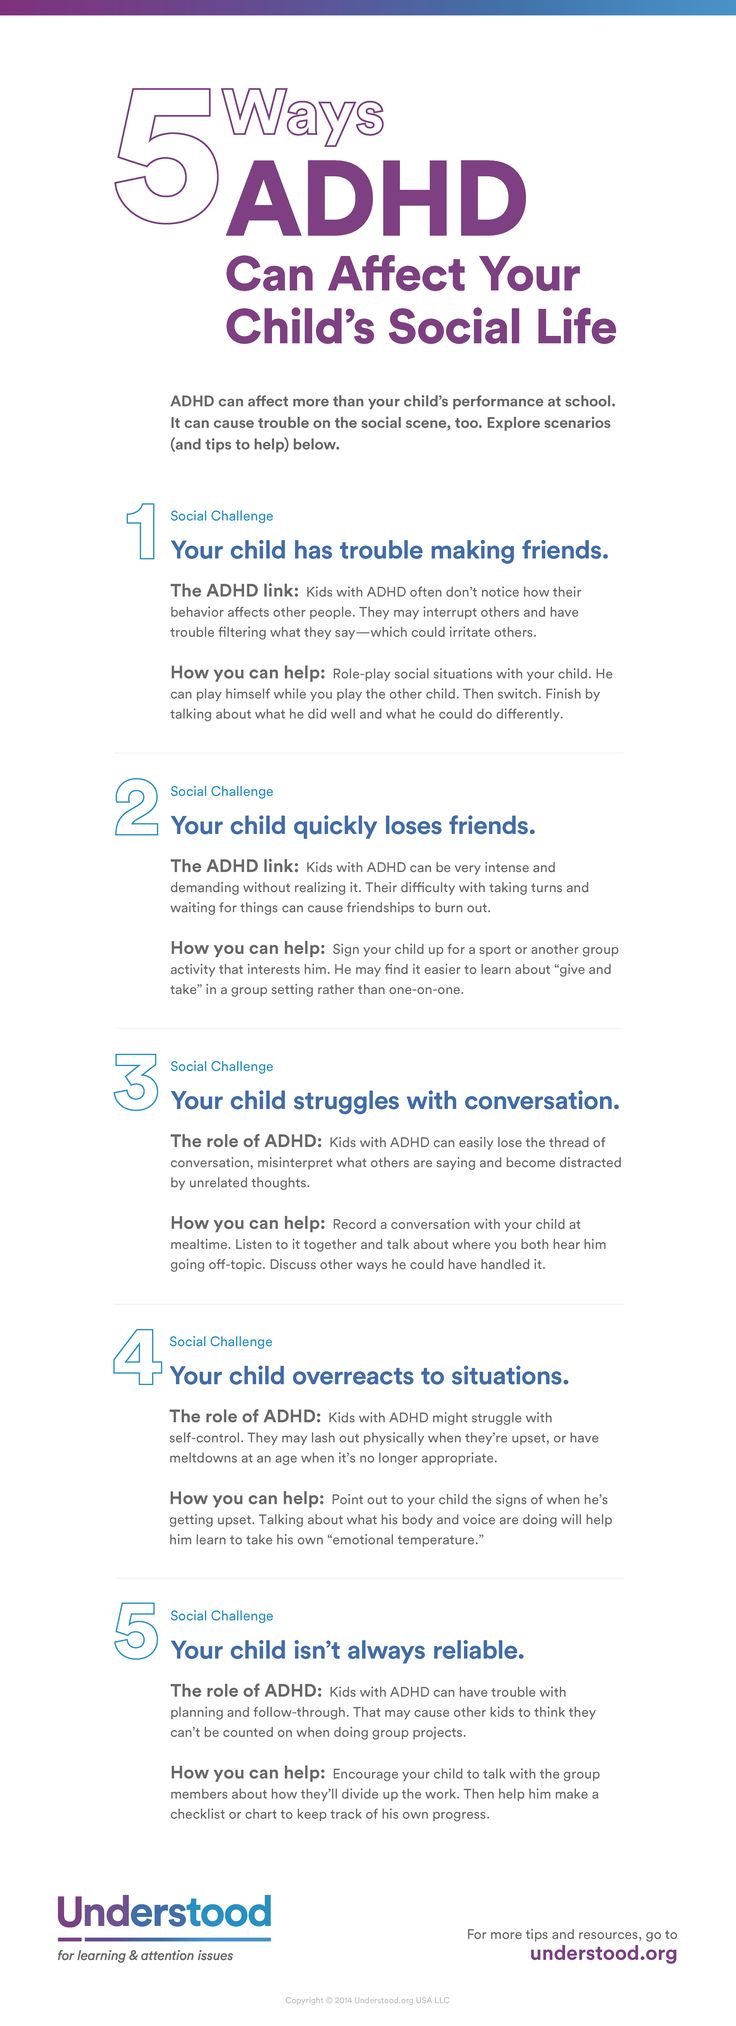 Children with ADHD often face social challenges in addition to other issues. Here are five examples of how ADHD affects social skills and behavior, and how you can help.